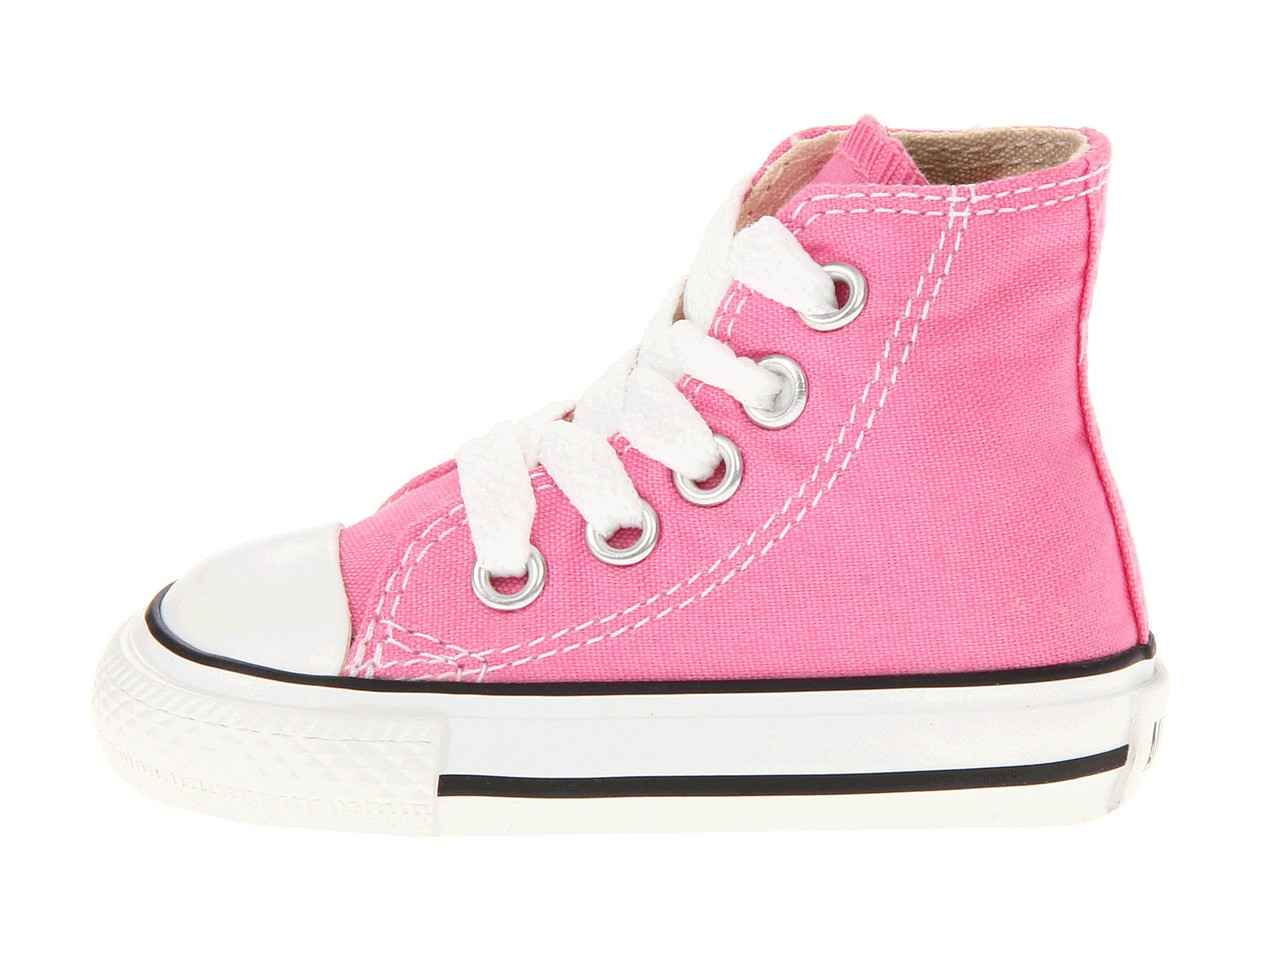 22d9ca99bb80 ... Кеды детские Converse Chuck Taylor All Star High Pink , фото 4